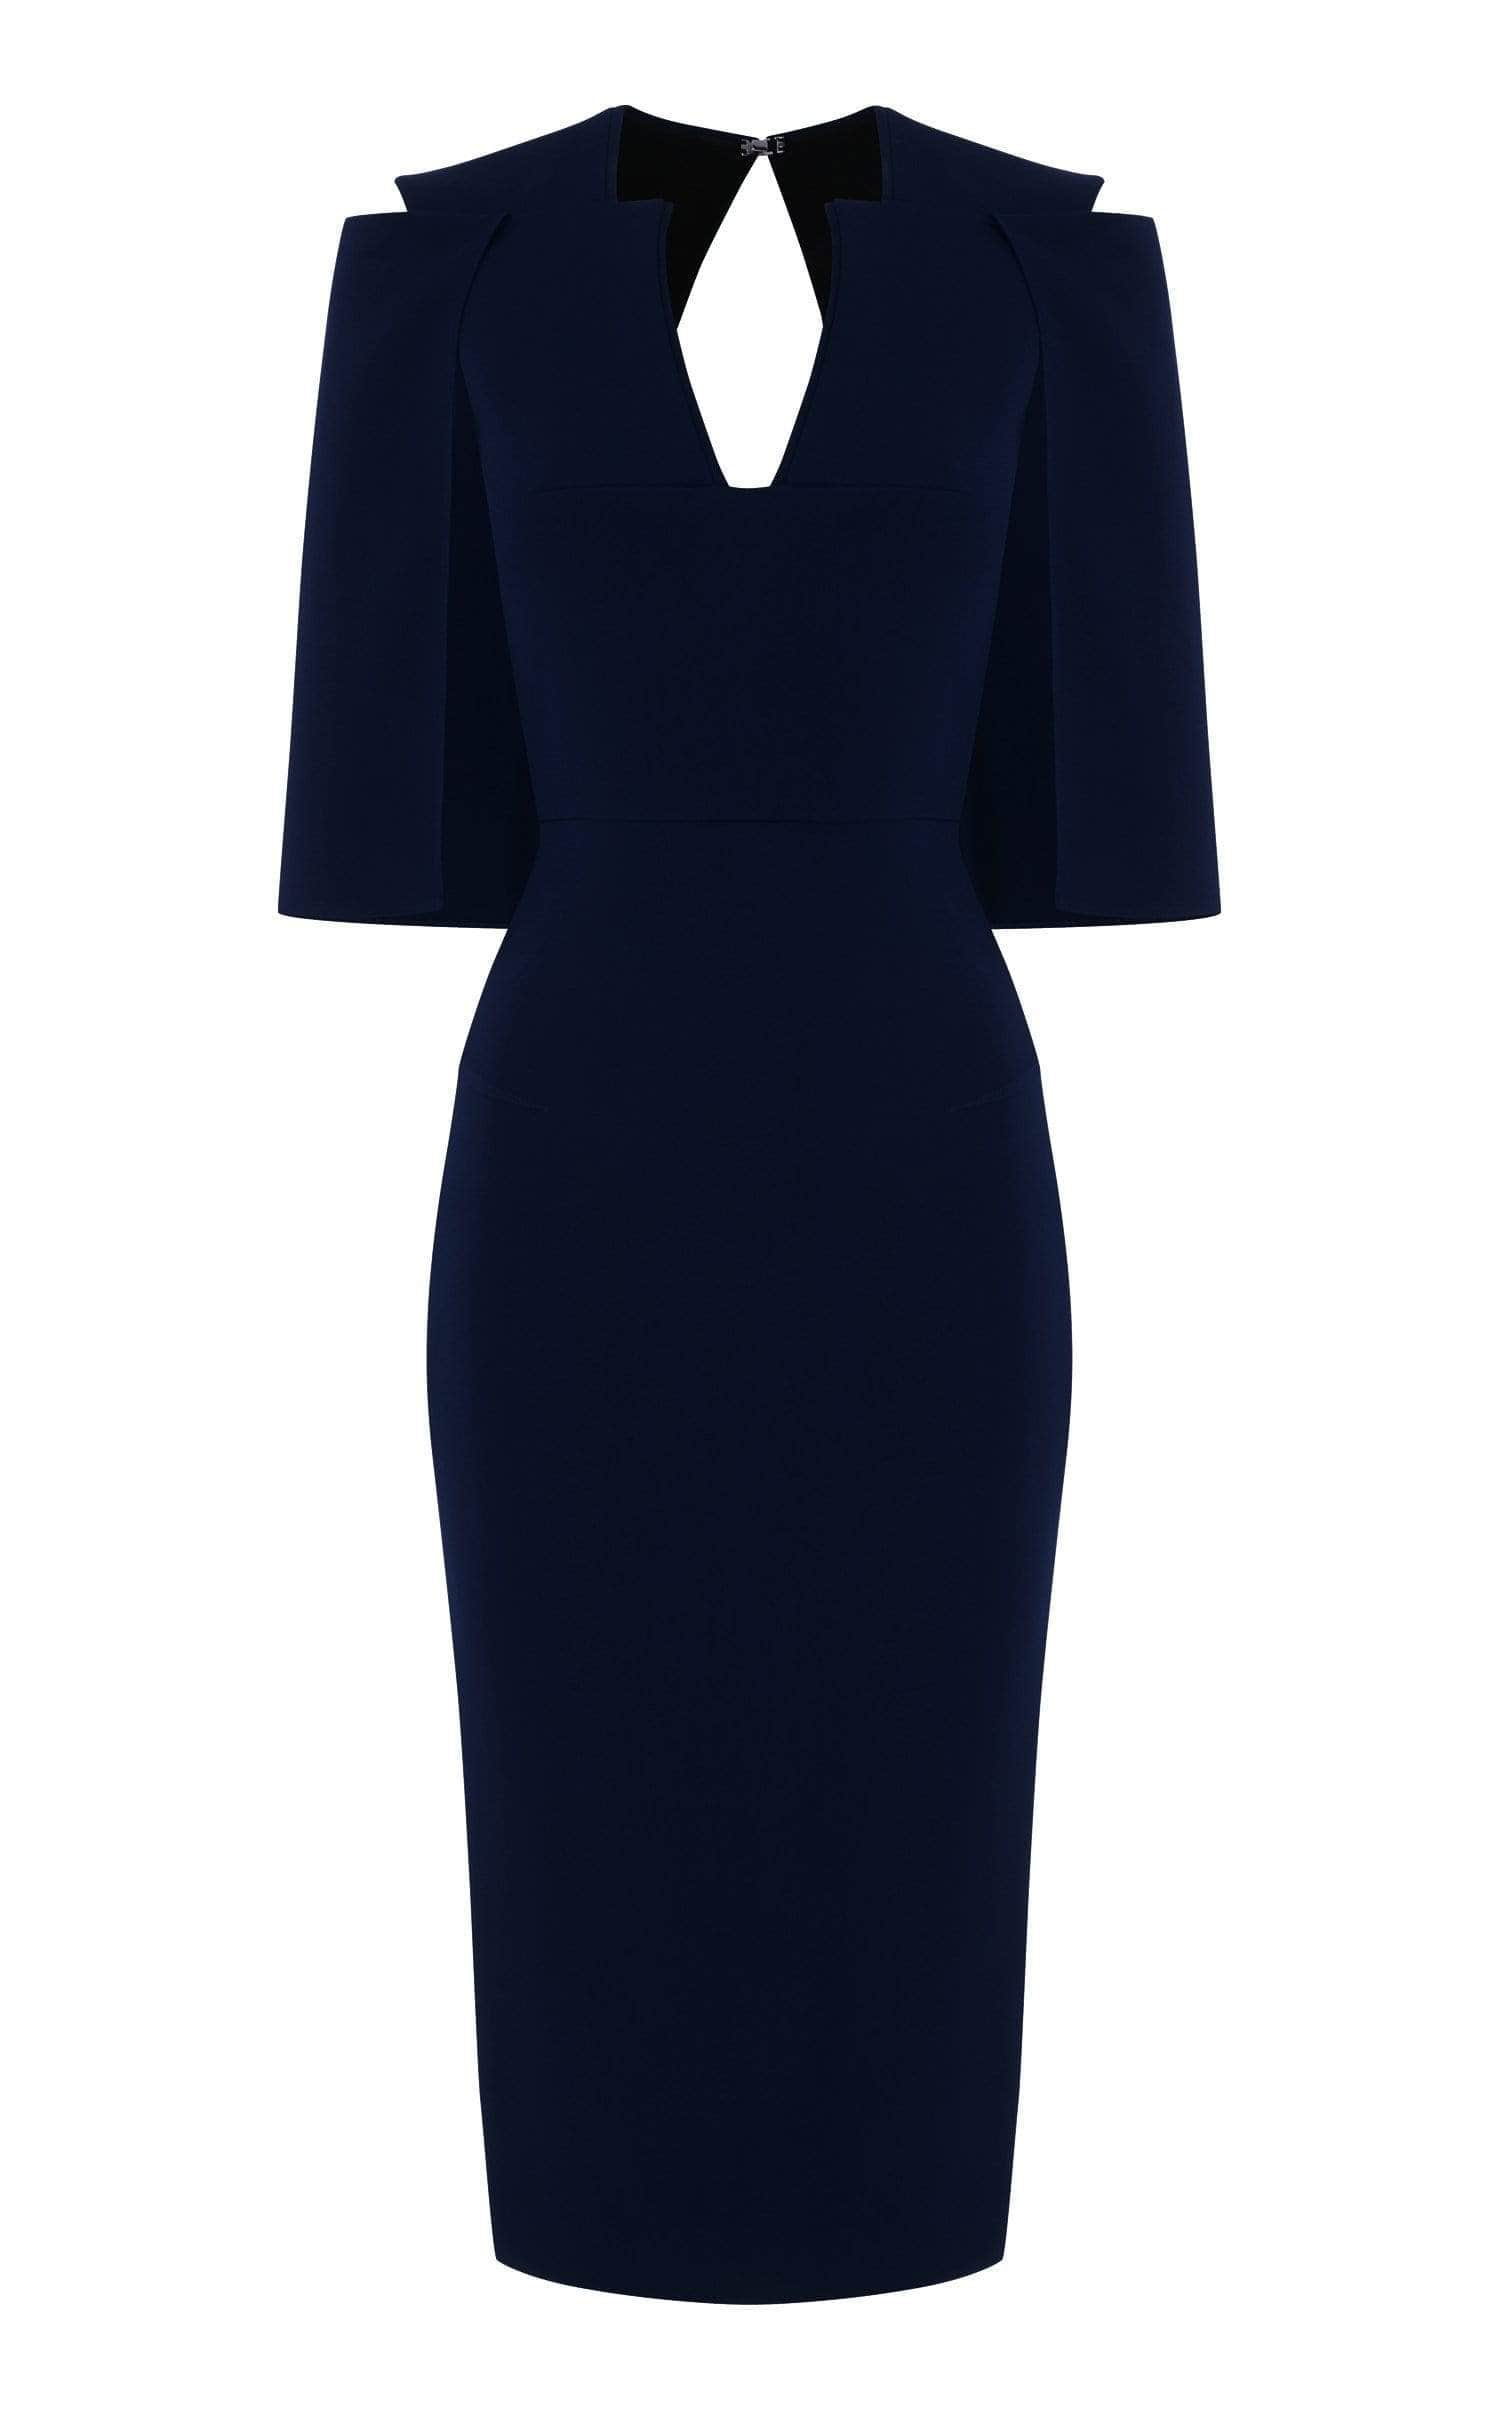 Queensbury Dress In Navy from Roland Mouret